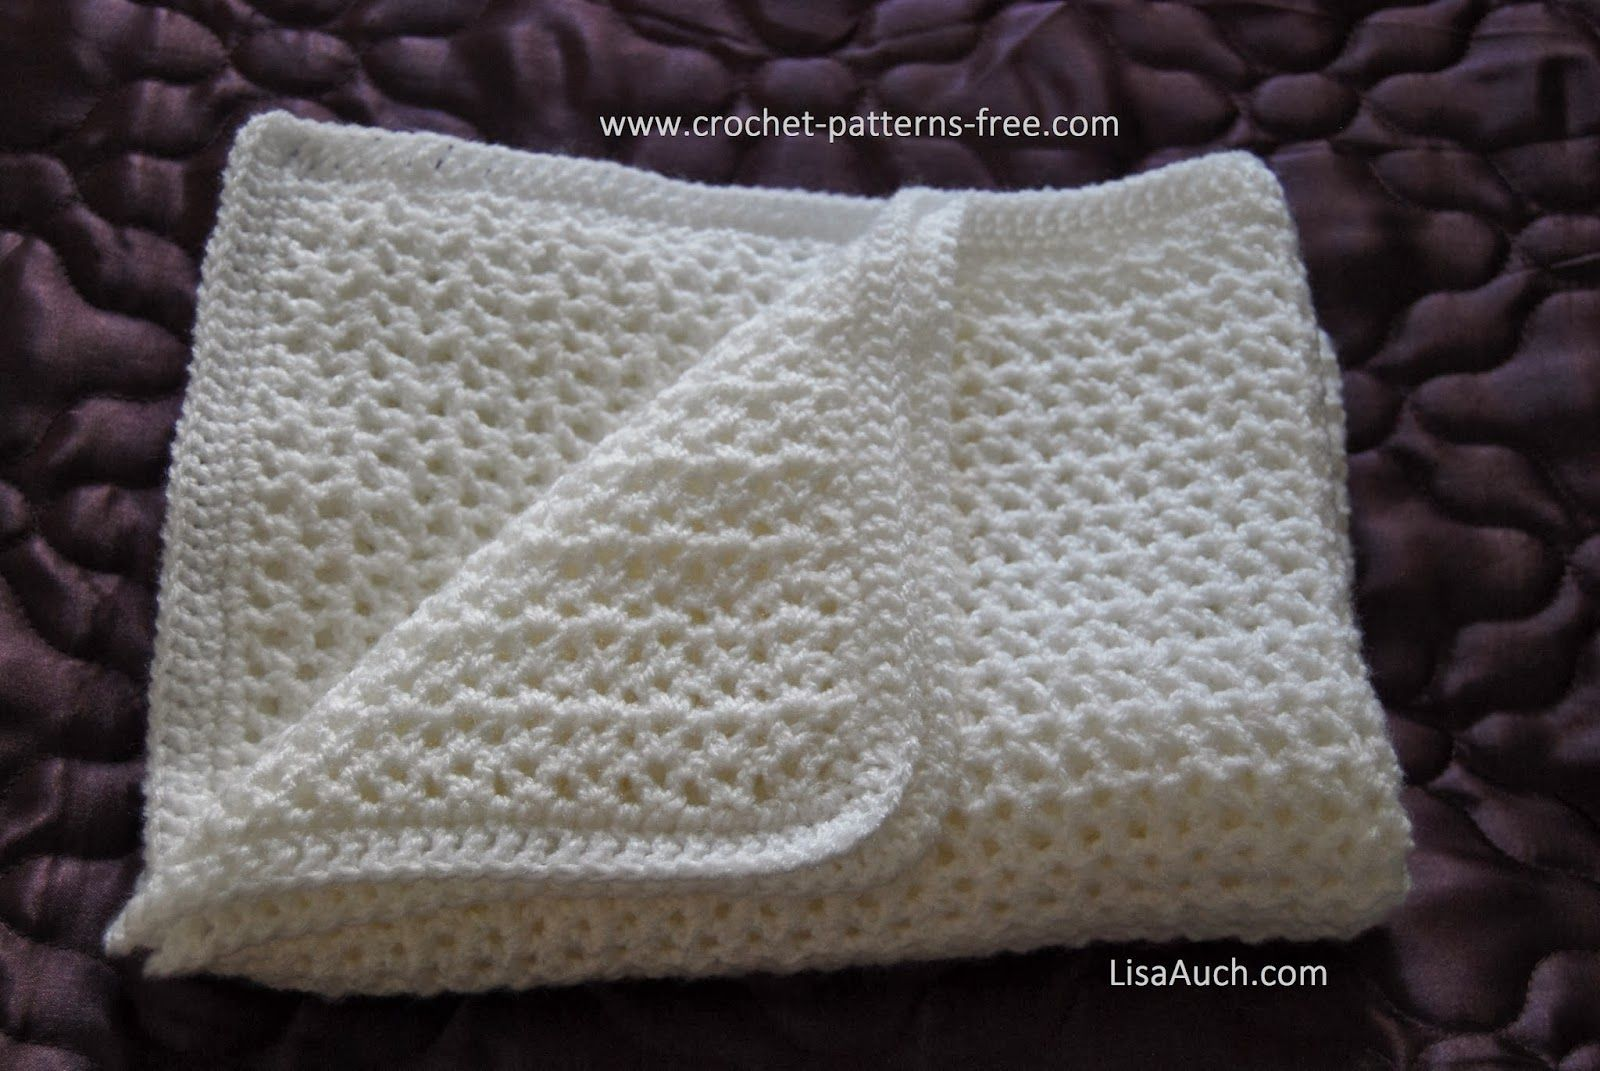 free crochet patterns-baby blanket patterns-baby afghan patterns ...